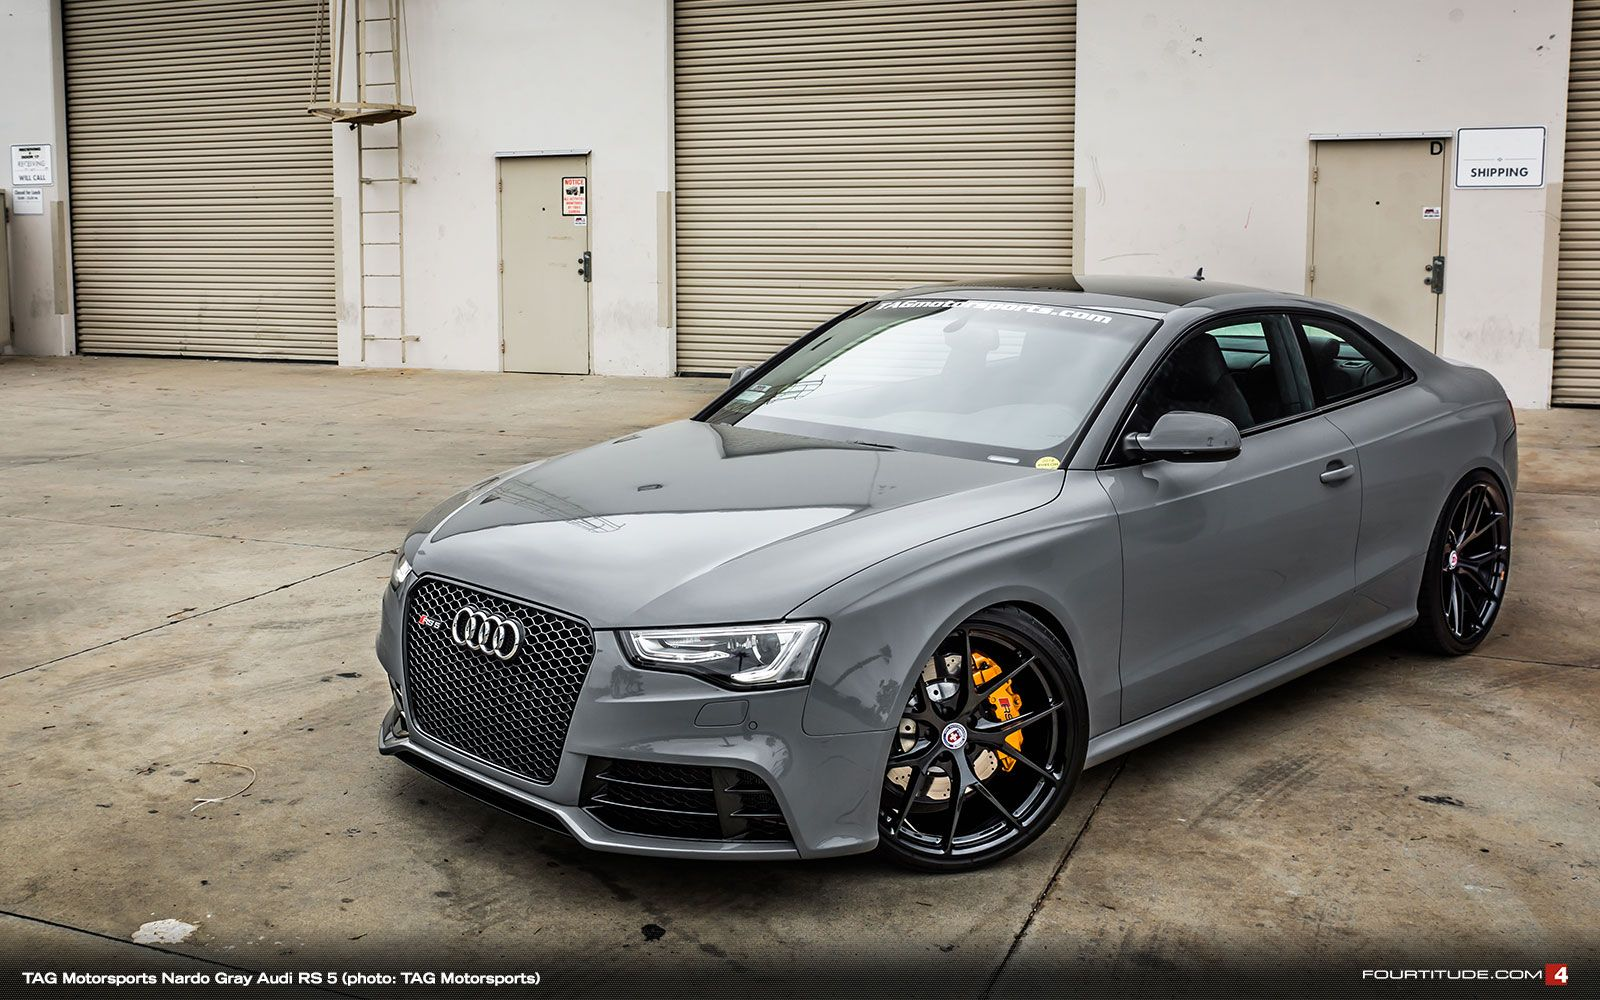 Nardo Gray Audi RS 5 by TAG Motorsports and HRE Wheels Audi S5, Audi 2017